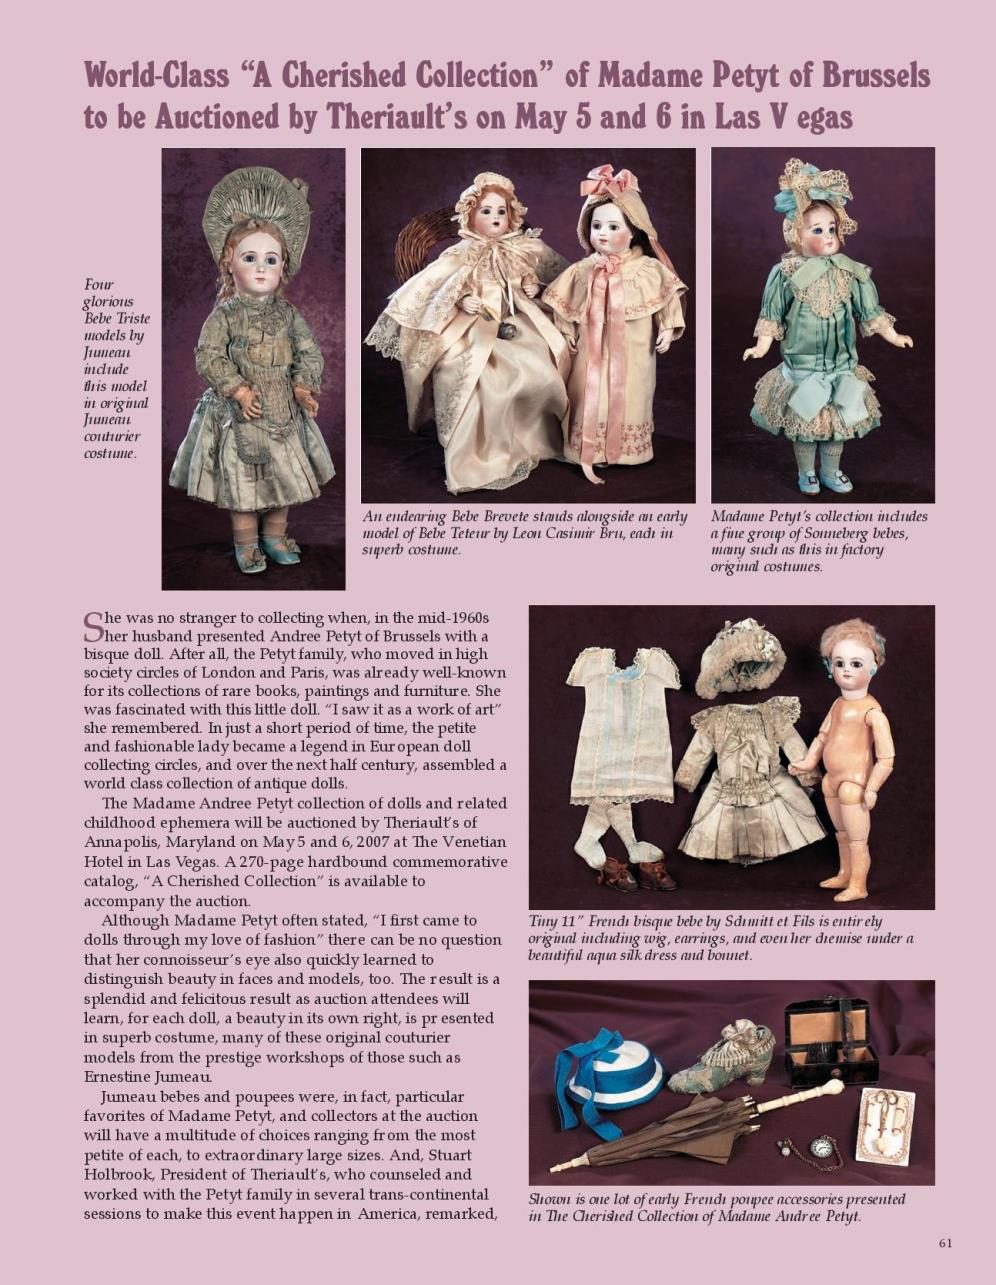 """World-Class """"A Cherished Collection"""" of Madame Petyt of Brussels to be Auctioned by Theriault's on May 5 and 6 in Las Vegas"""